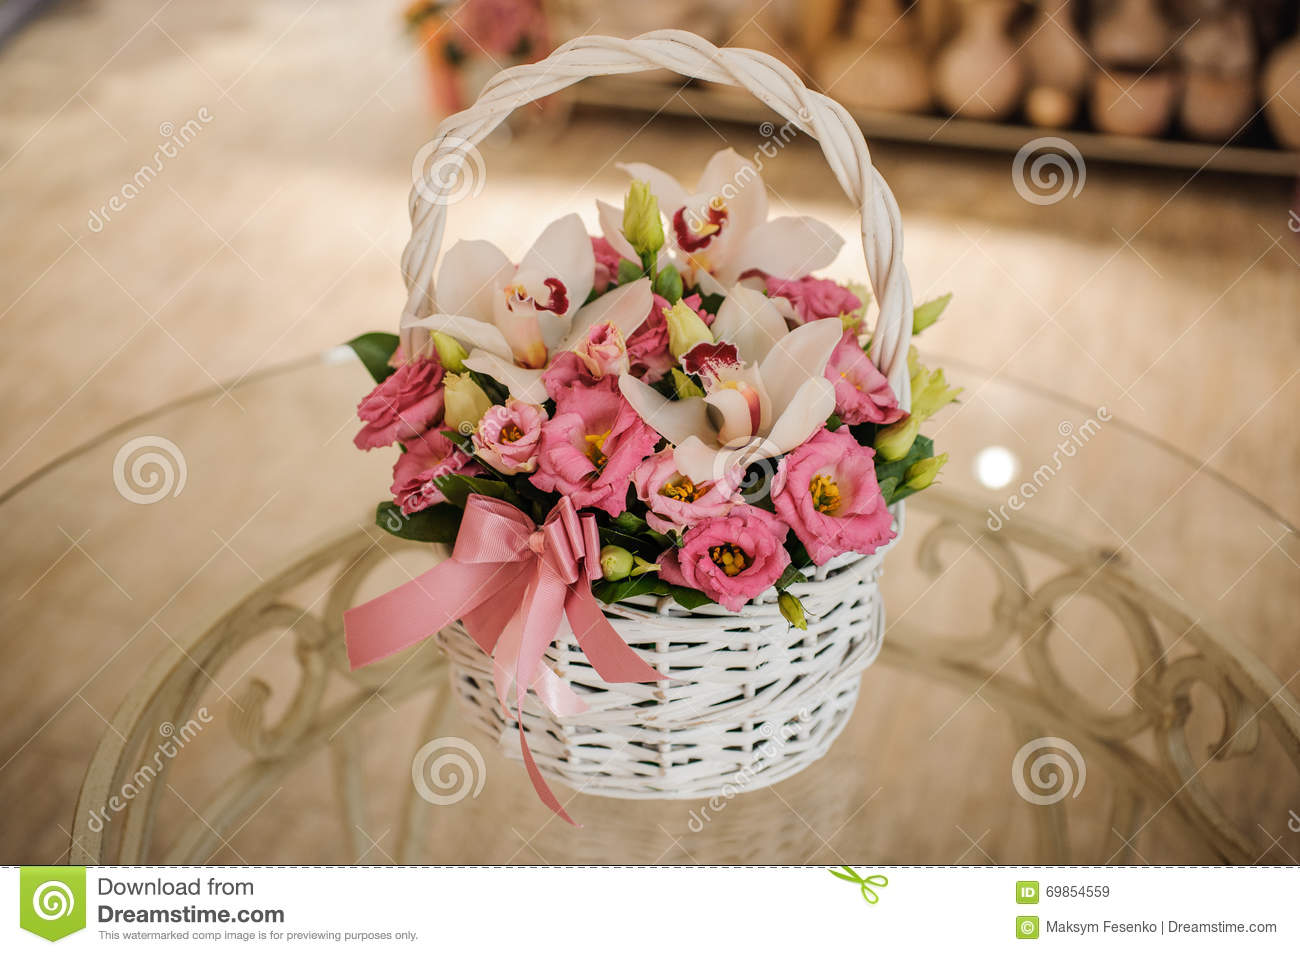 Beautiful Pink Bouquet Of Mixed Flowers In Basket On Table Stock